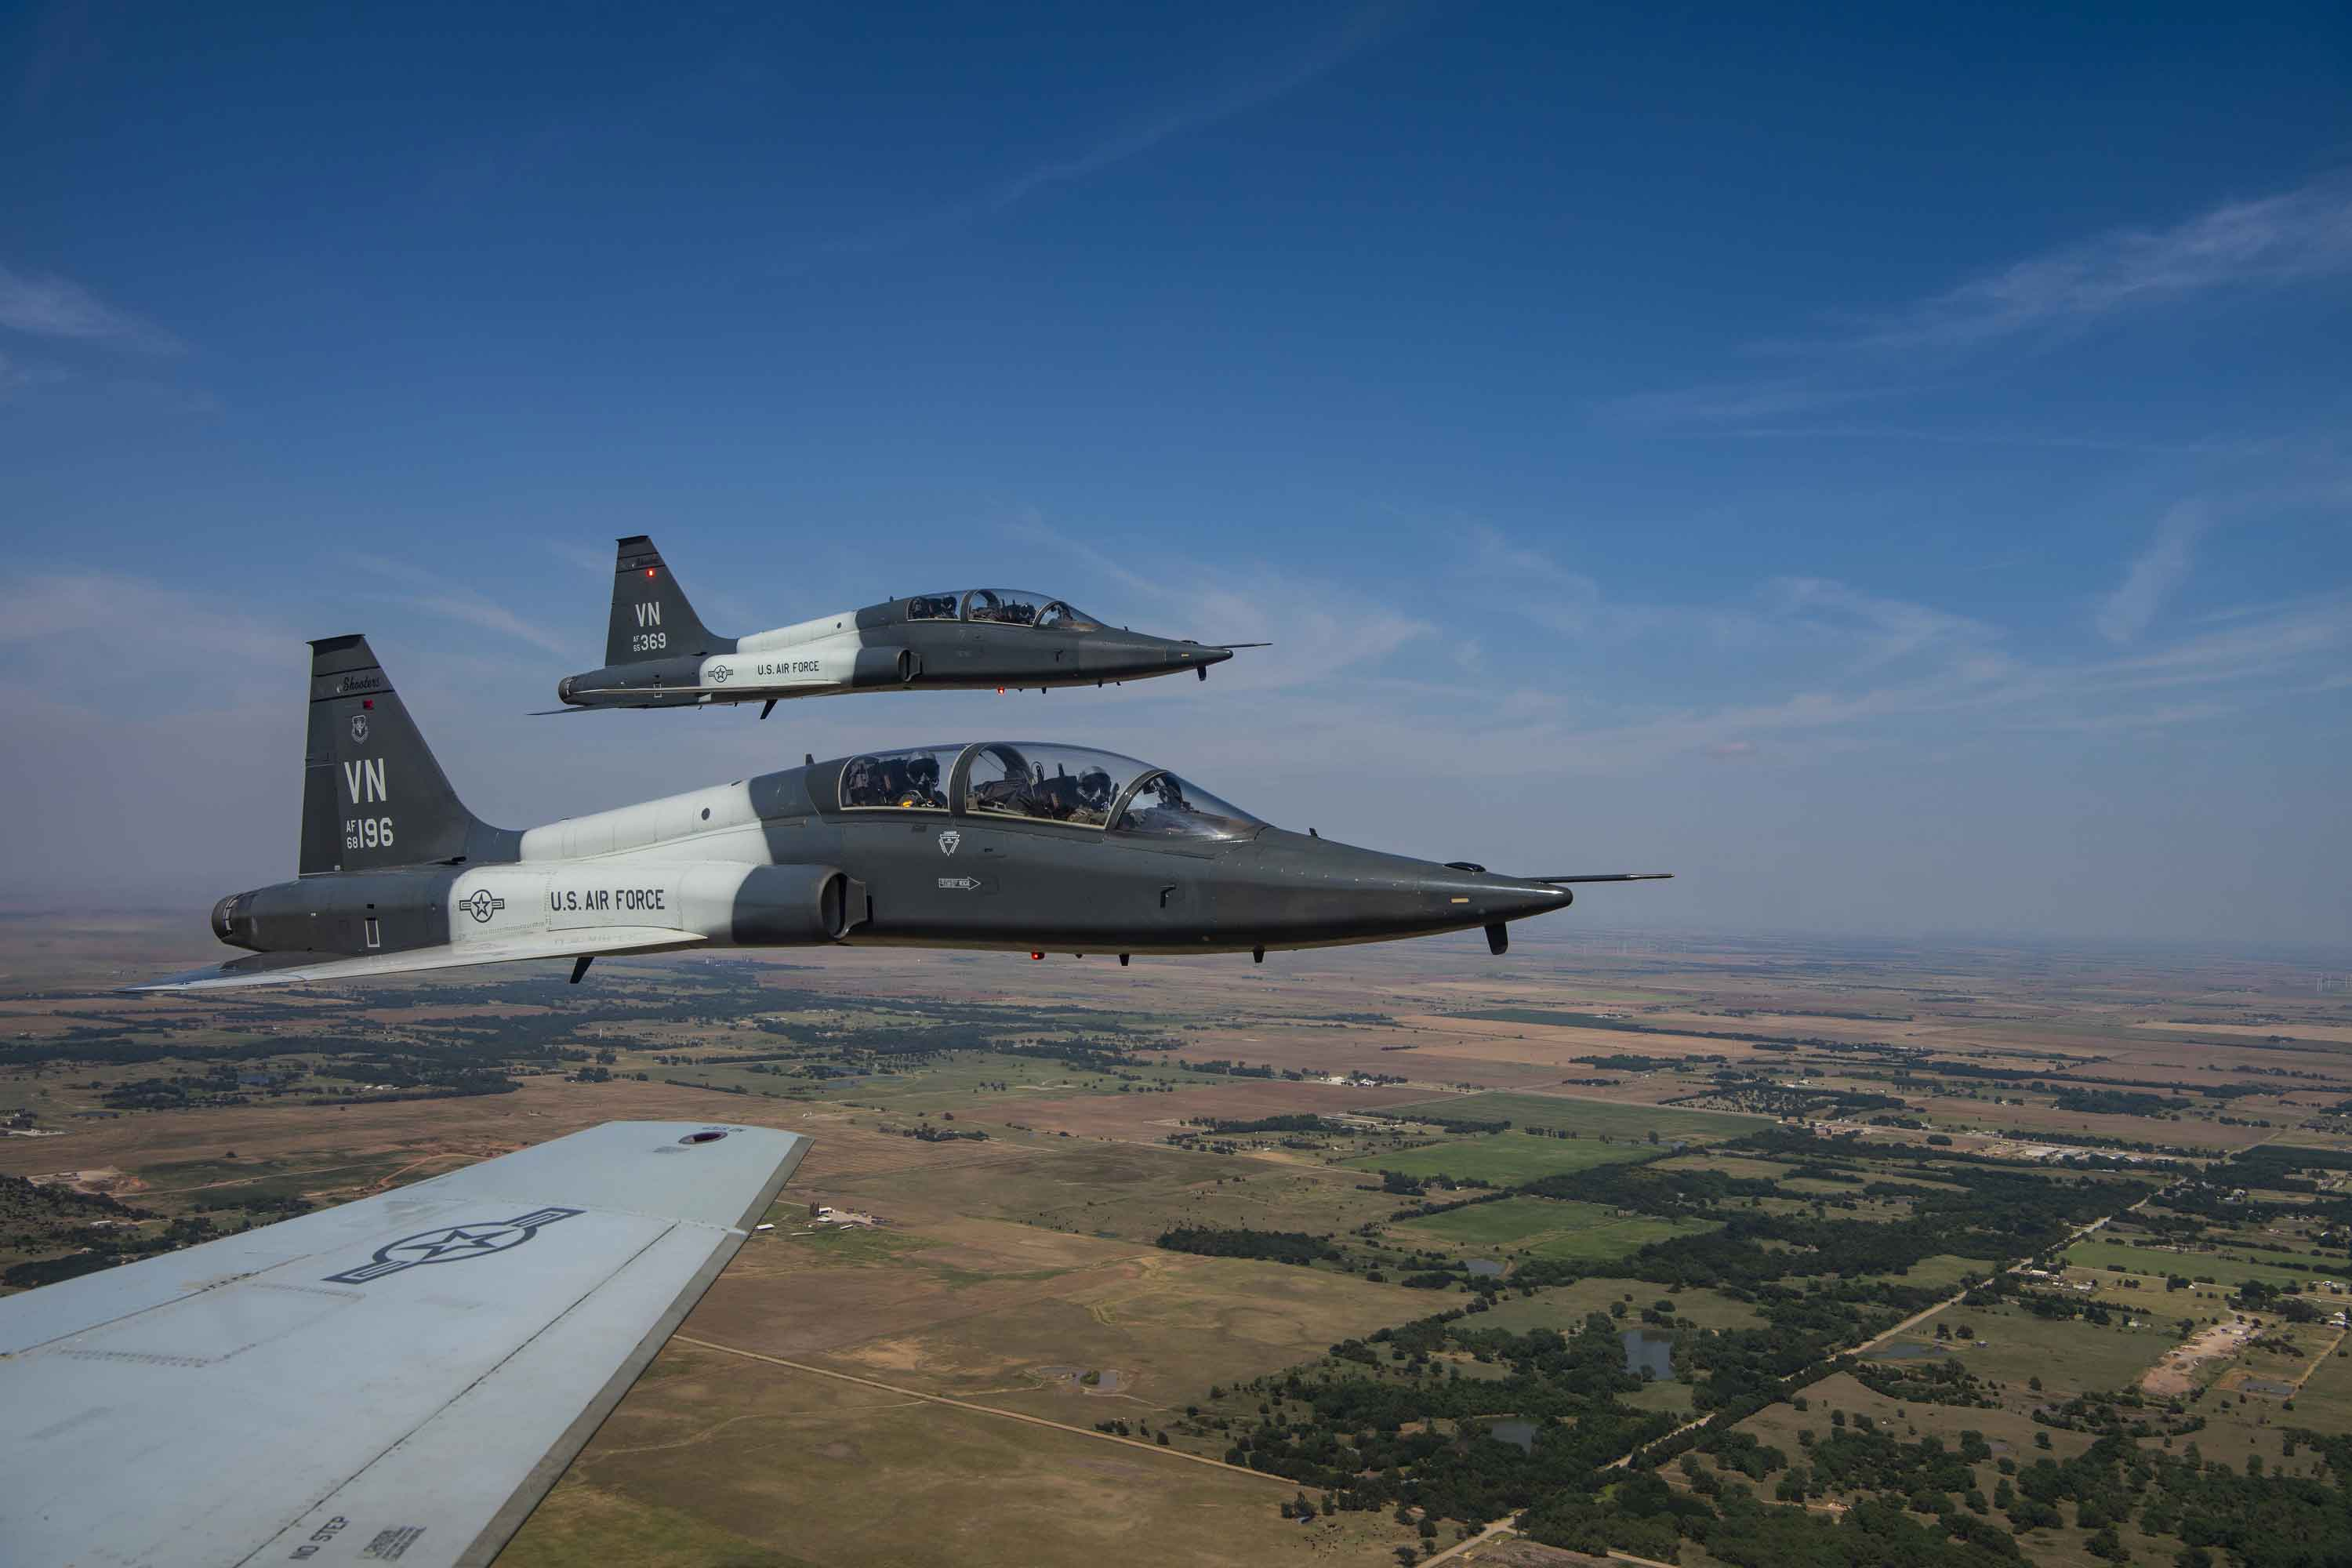 2 Airmen Dead After T-38 Trainer Aircraft Accident at Vance AFB